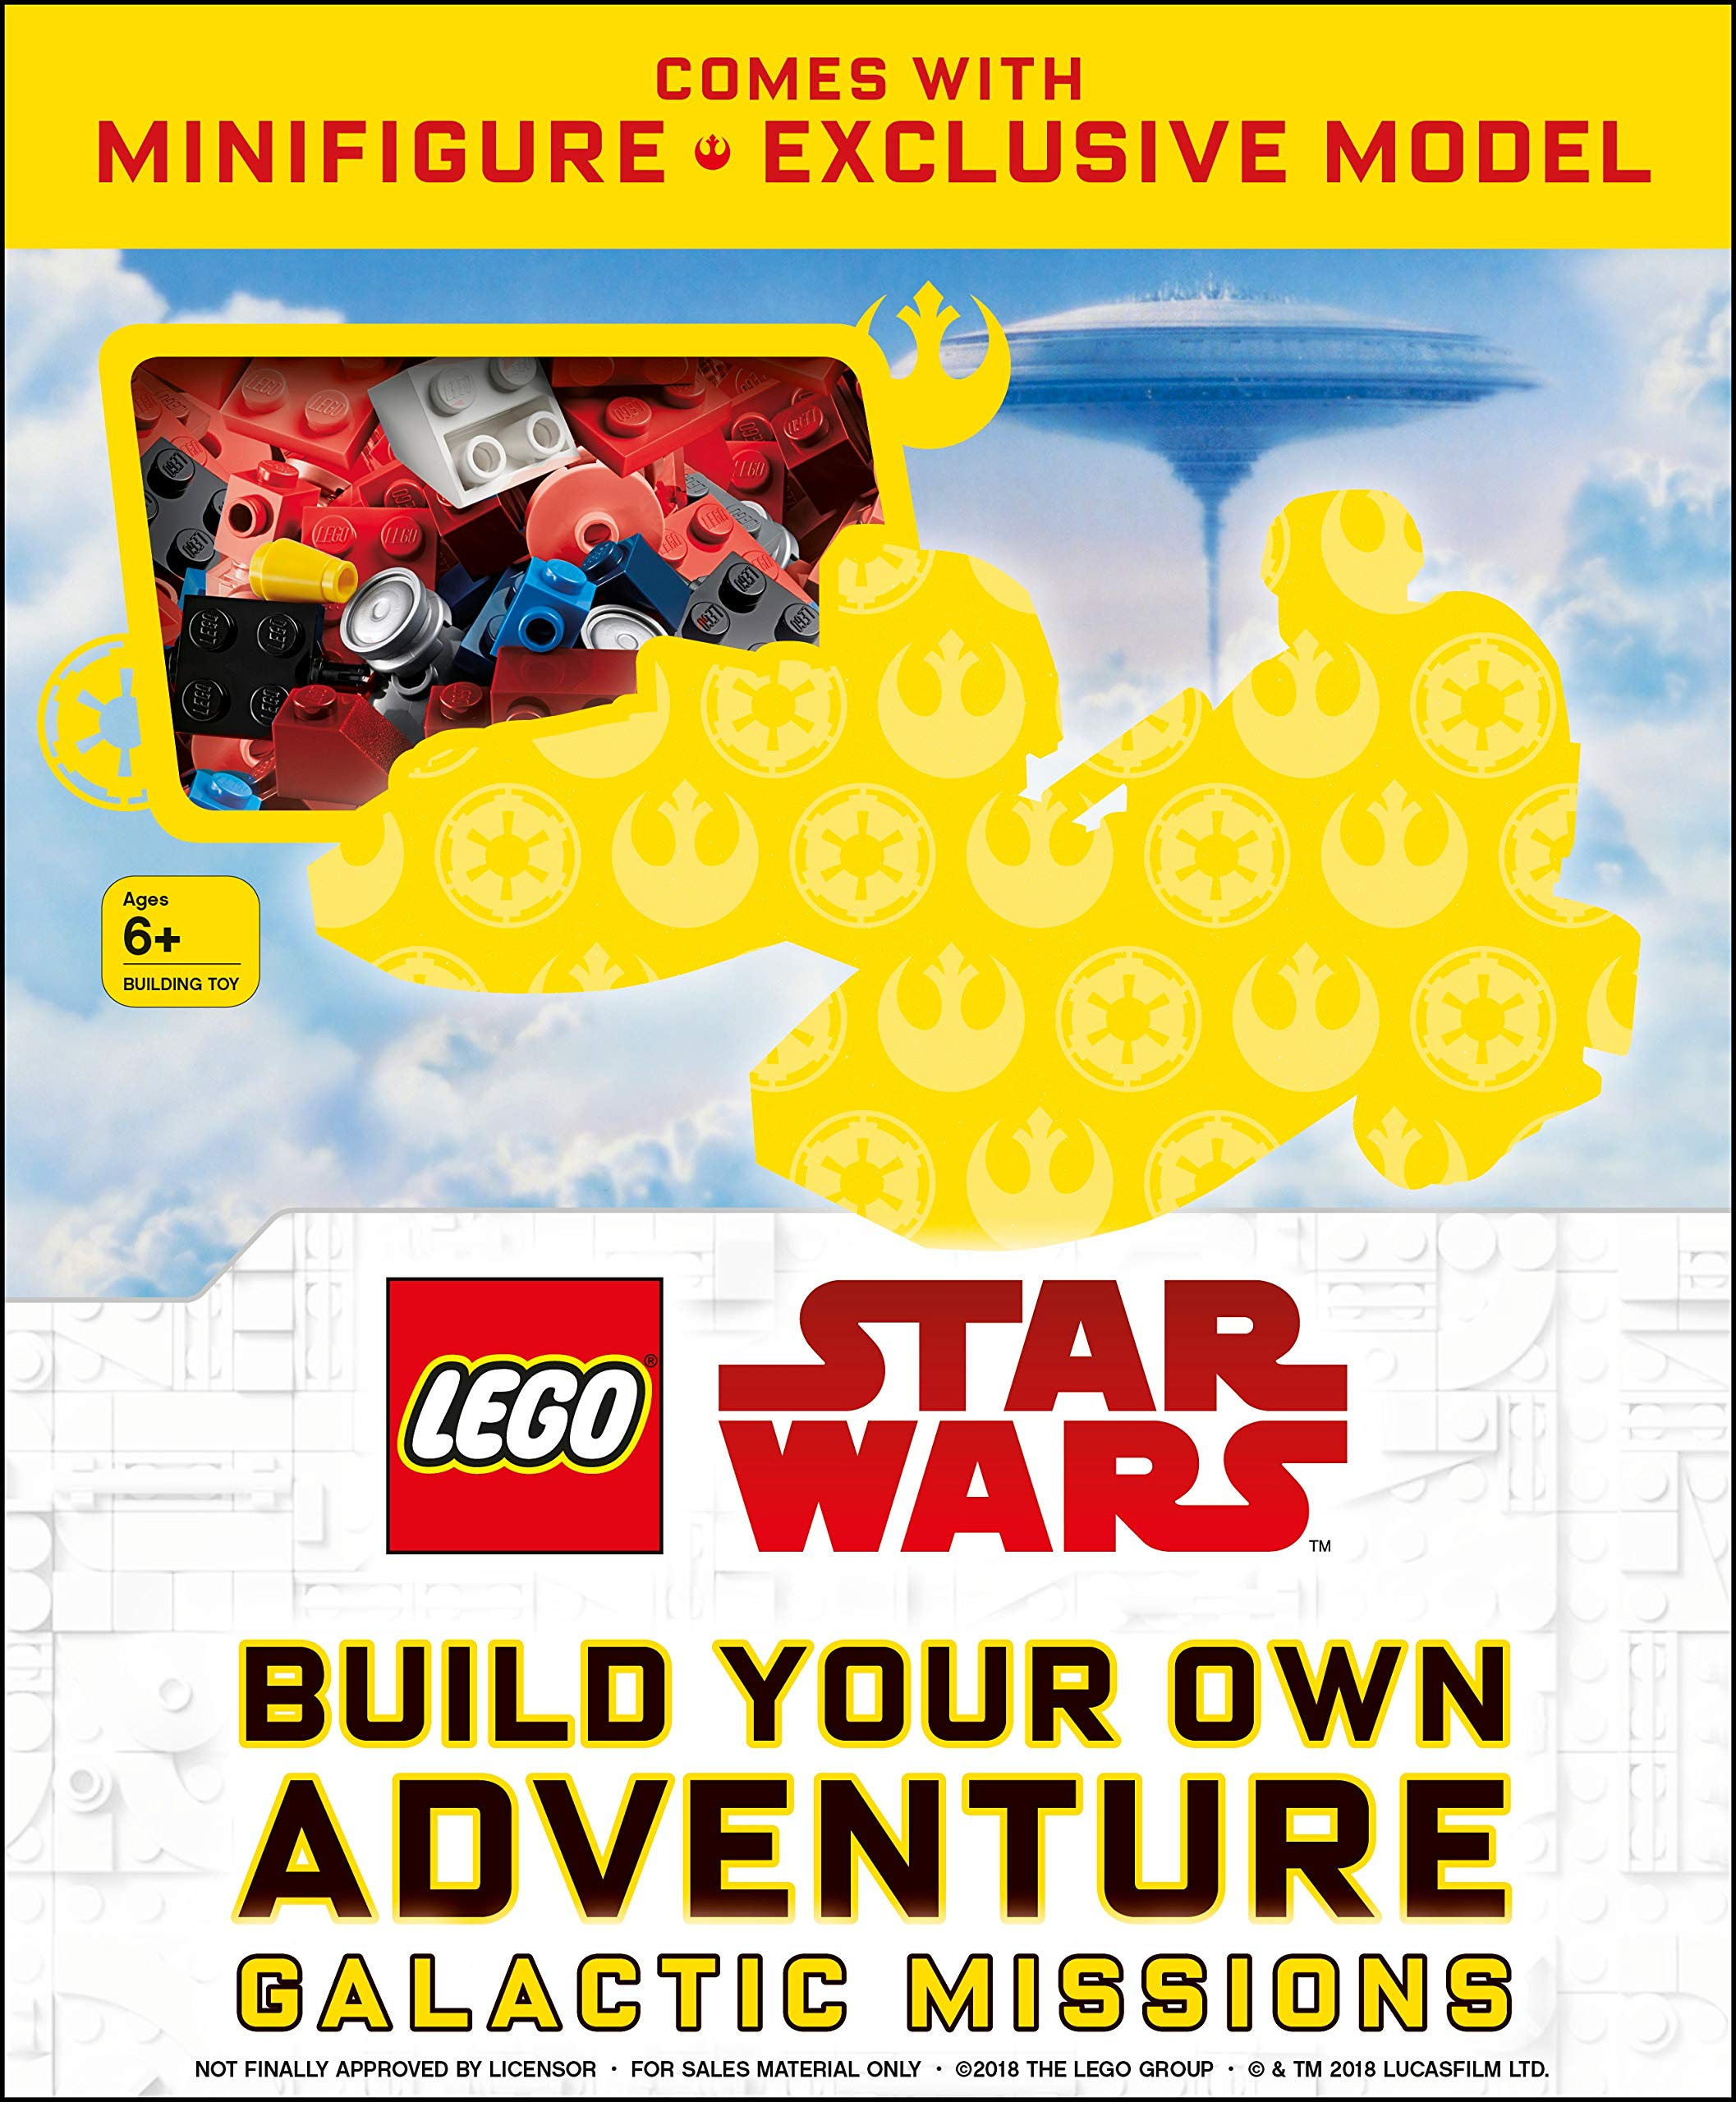 Build Your Own Adventure Galactic Missions